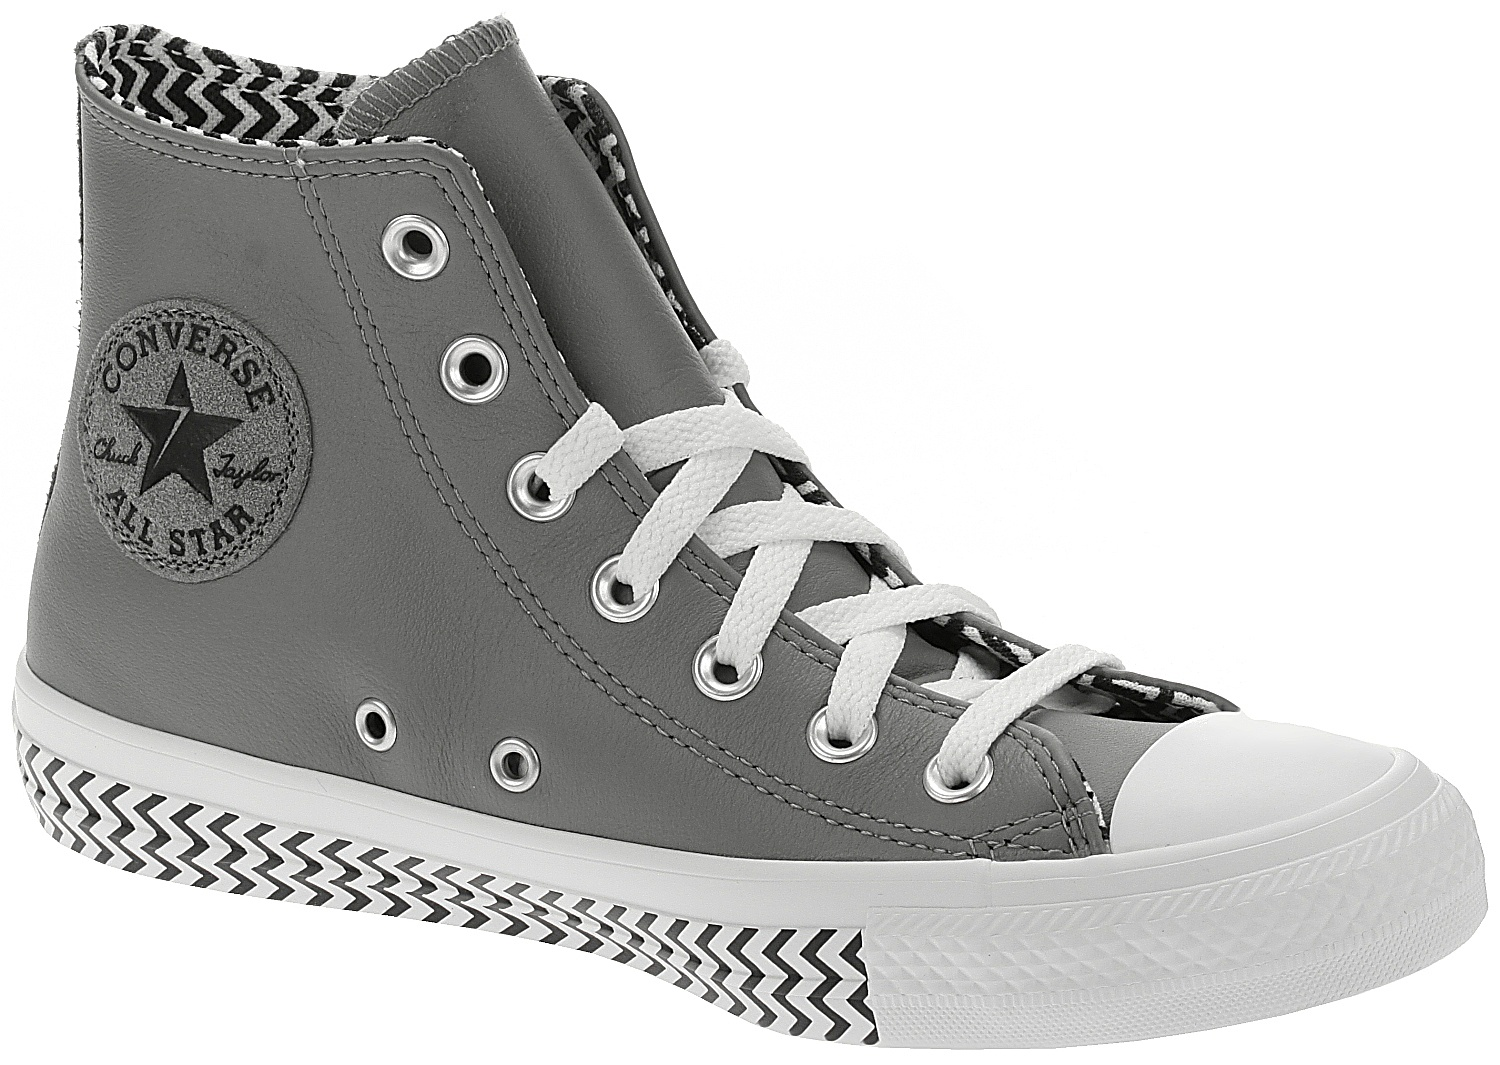 boty Converse Chuck Taylor All Star Vltg Leather Hi - 566130/Mason/Black/White 39